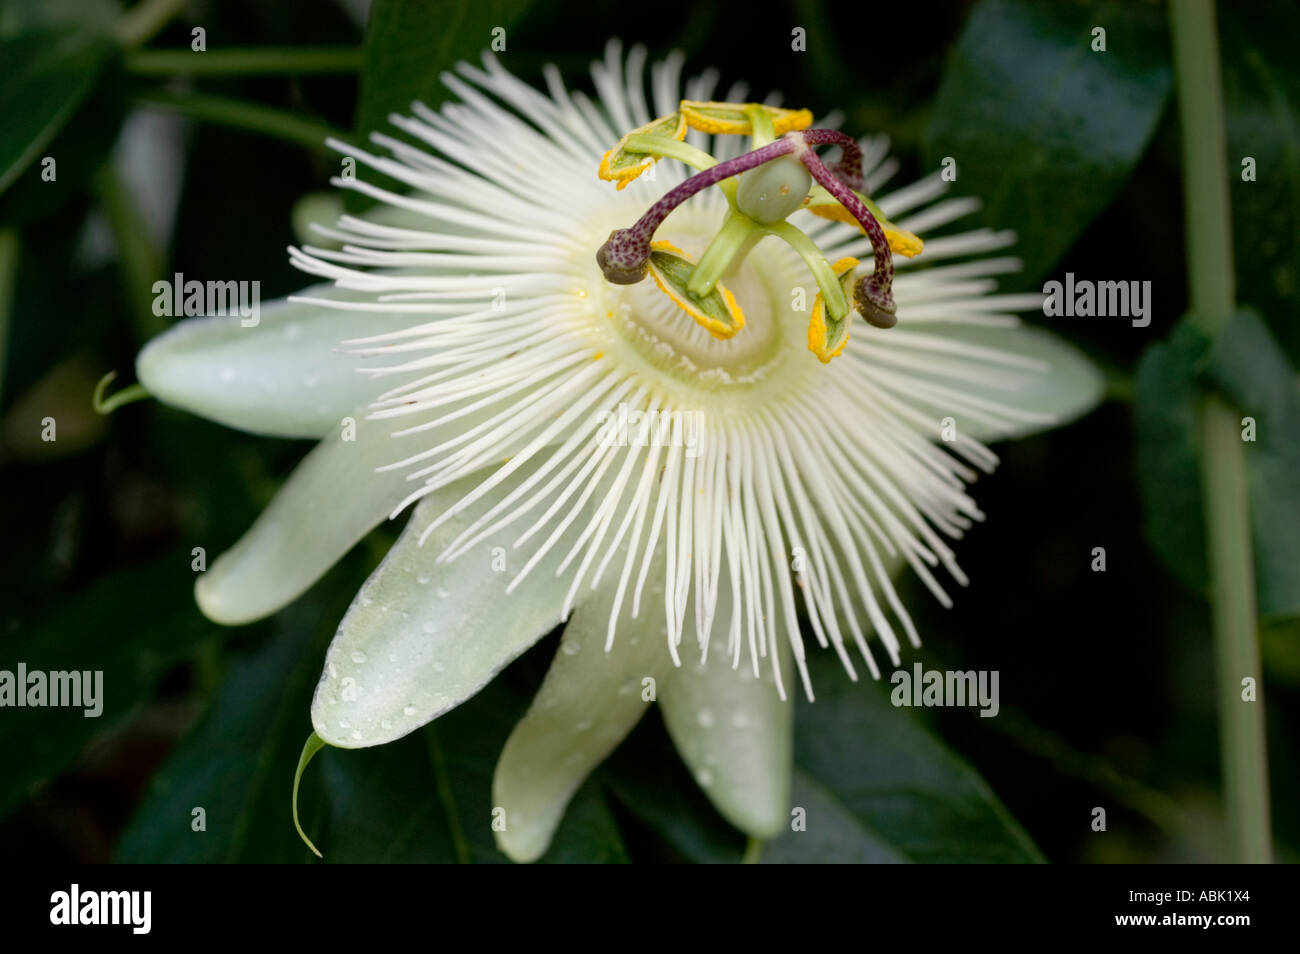 White flower of passiflora close up stock photo royalty free stock photo white flower of passiflora close up dhlflorist Images